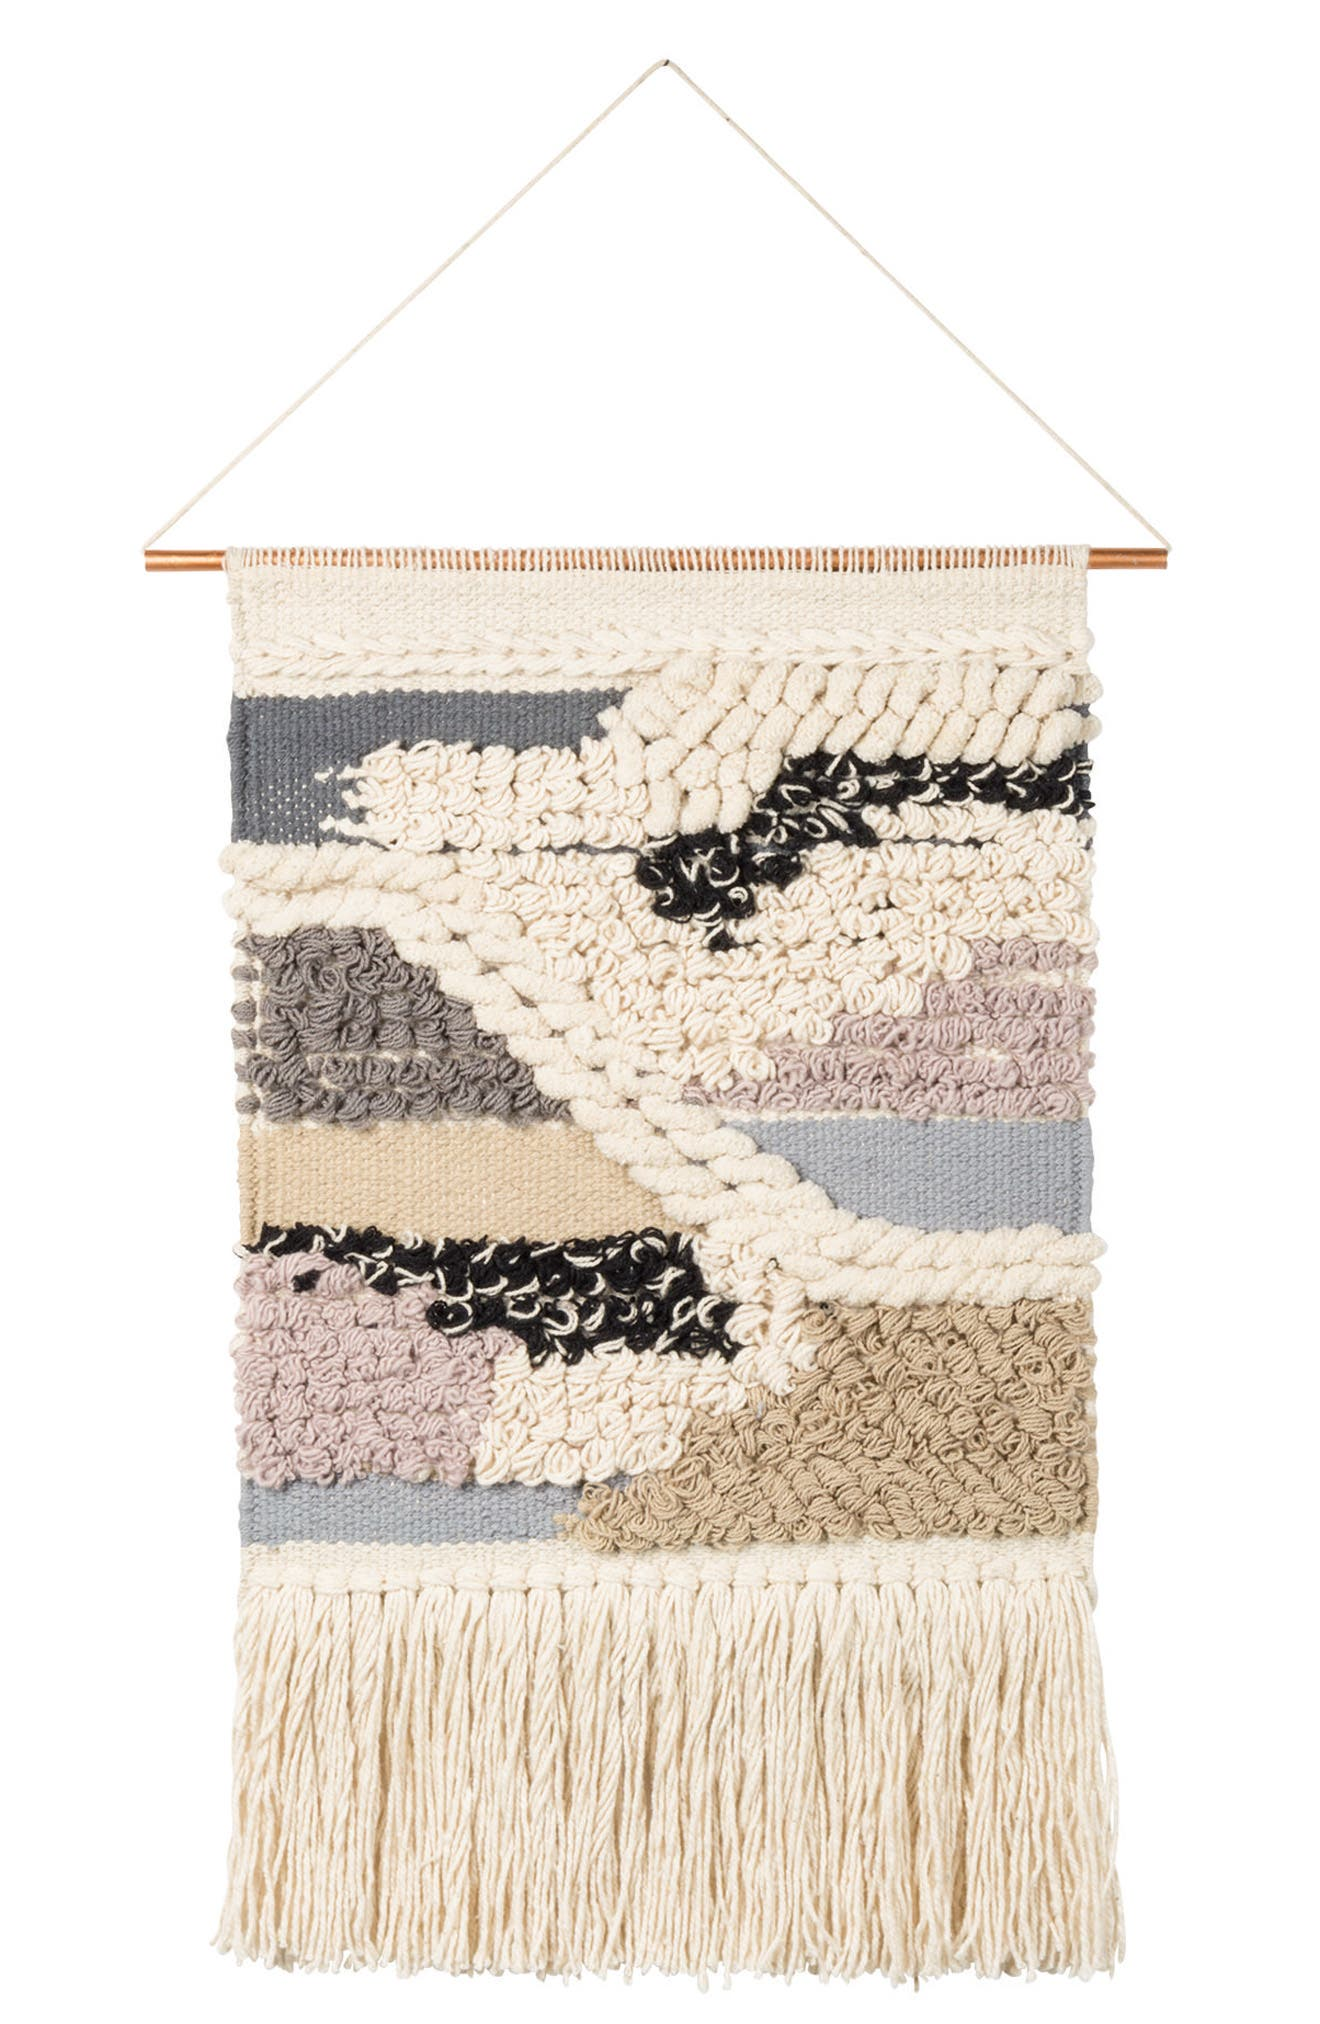 Nomad Woven Wall Hanging,                         Main,                         color, Ivory